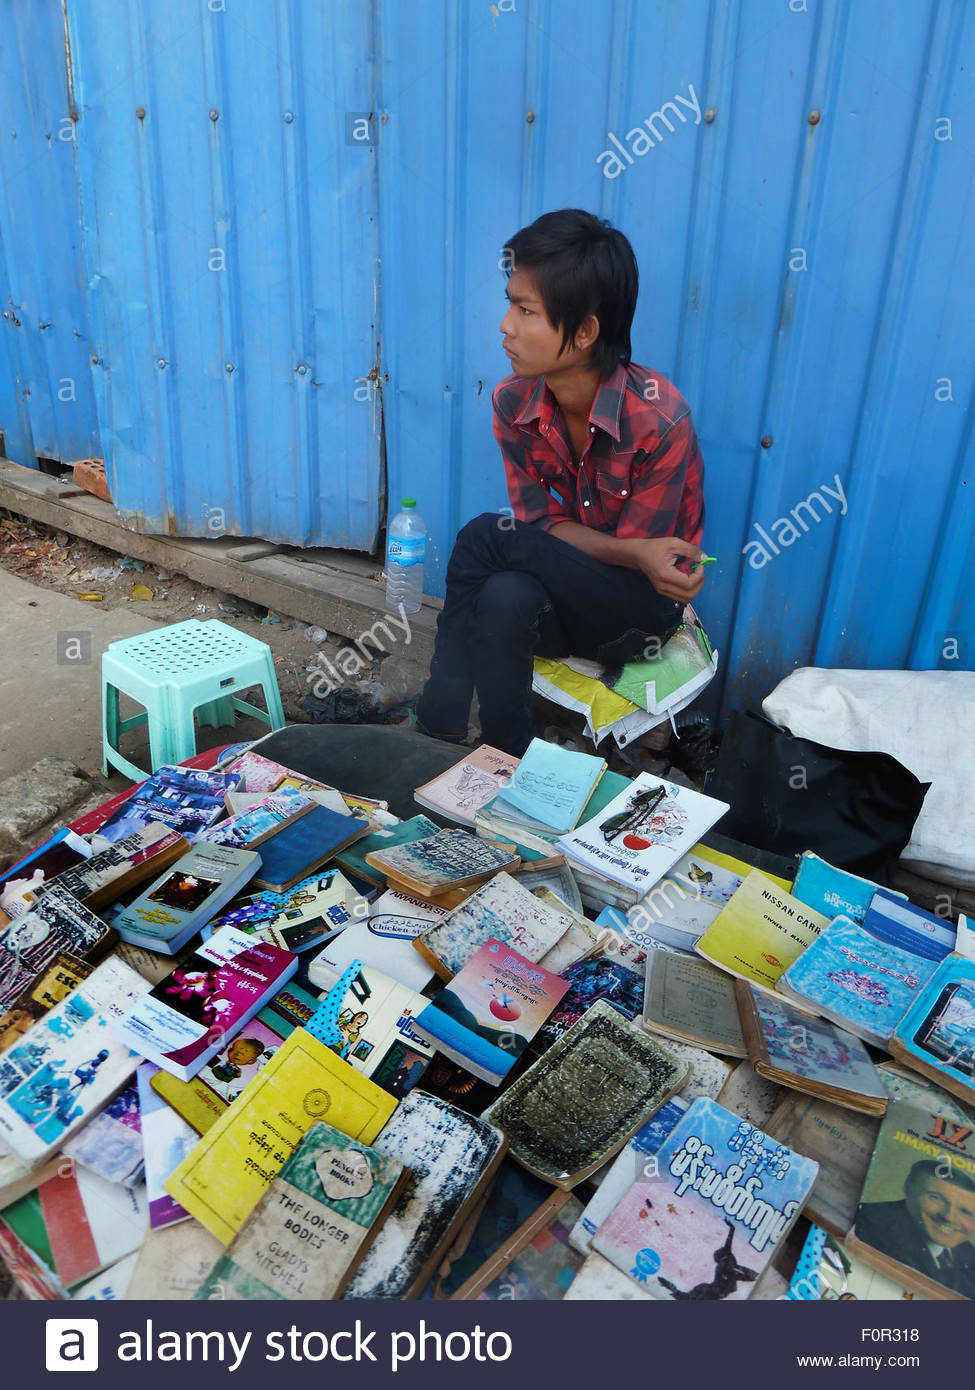 View of a youthful sidewalk bookseller at his table in Yangon, Myanmar where he sells used and second hand books - Stock Image